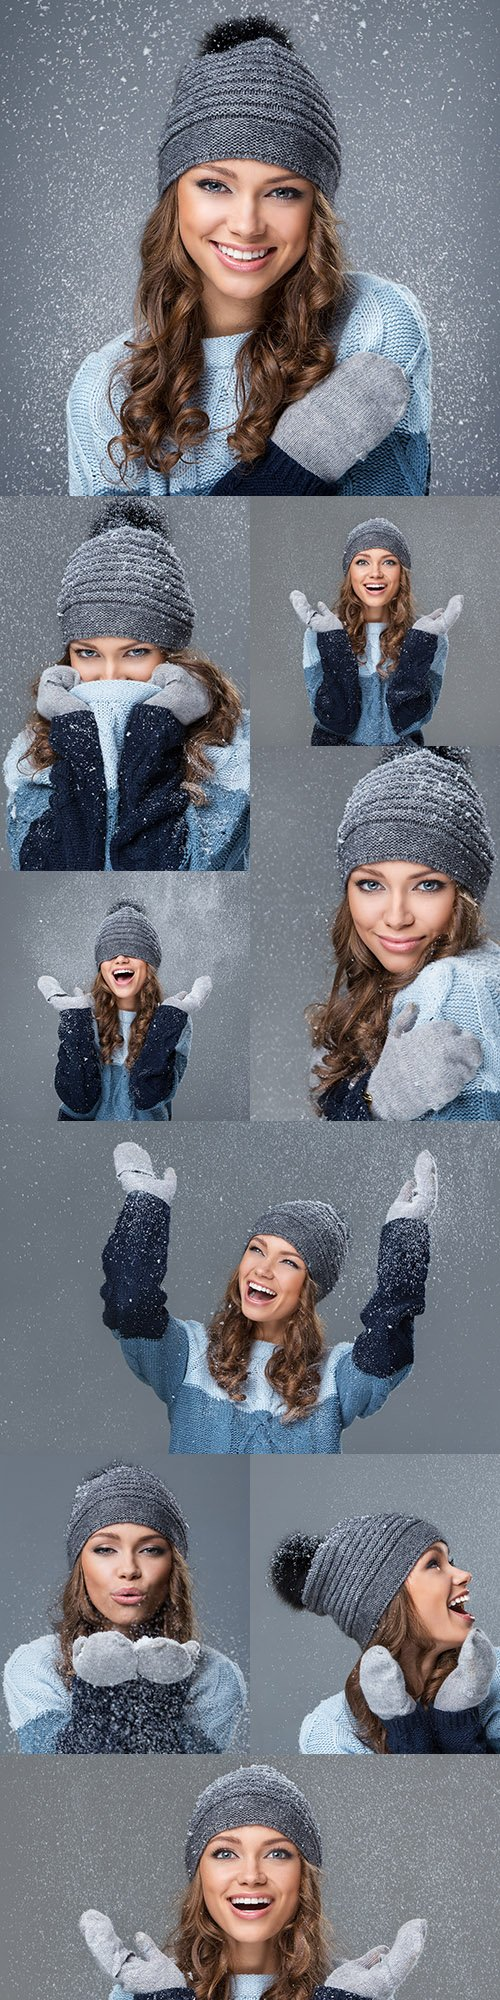 Cute girl in winter hat and wares with snowflakes